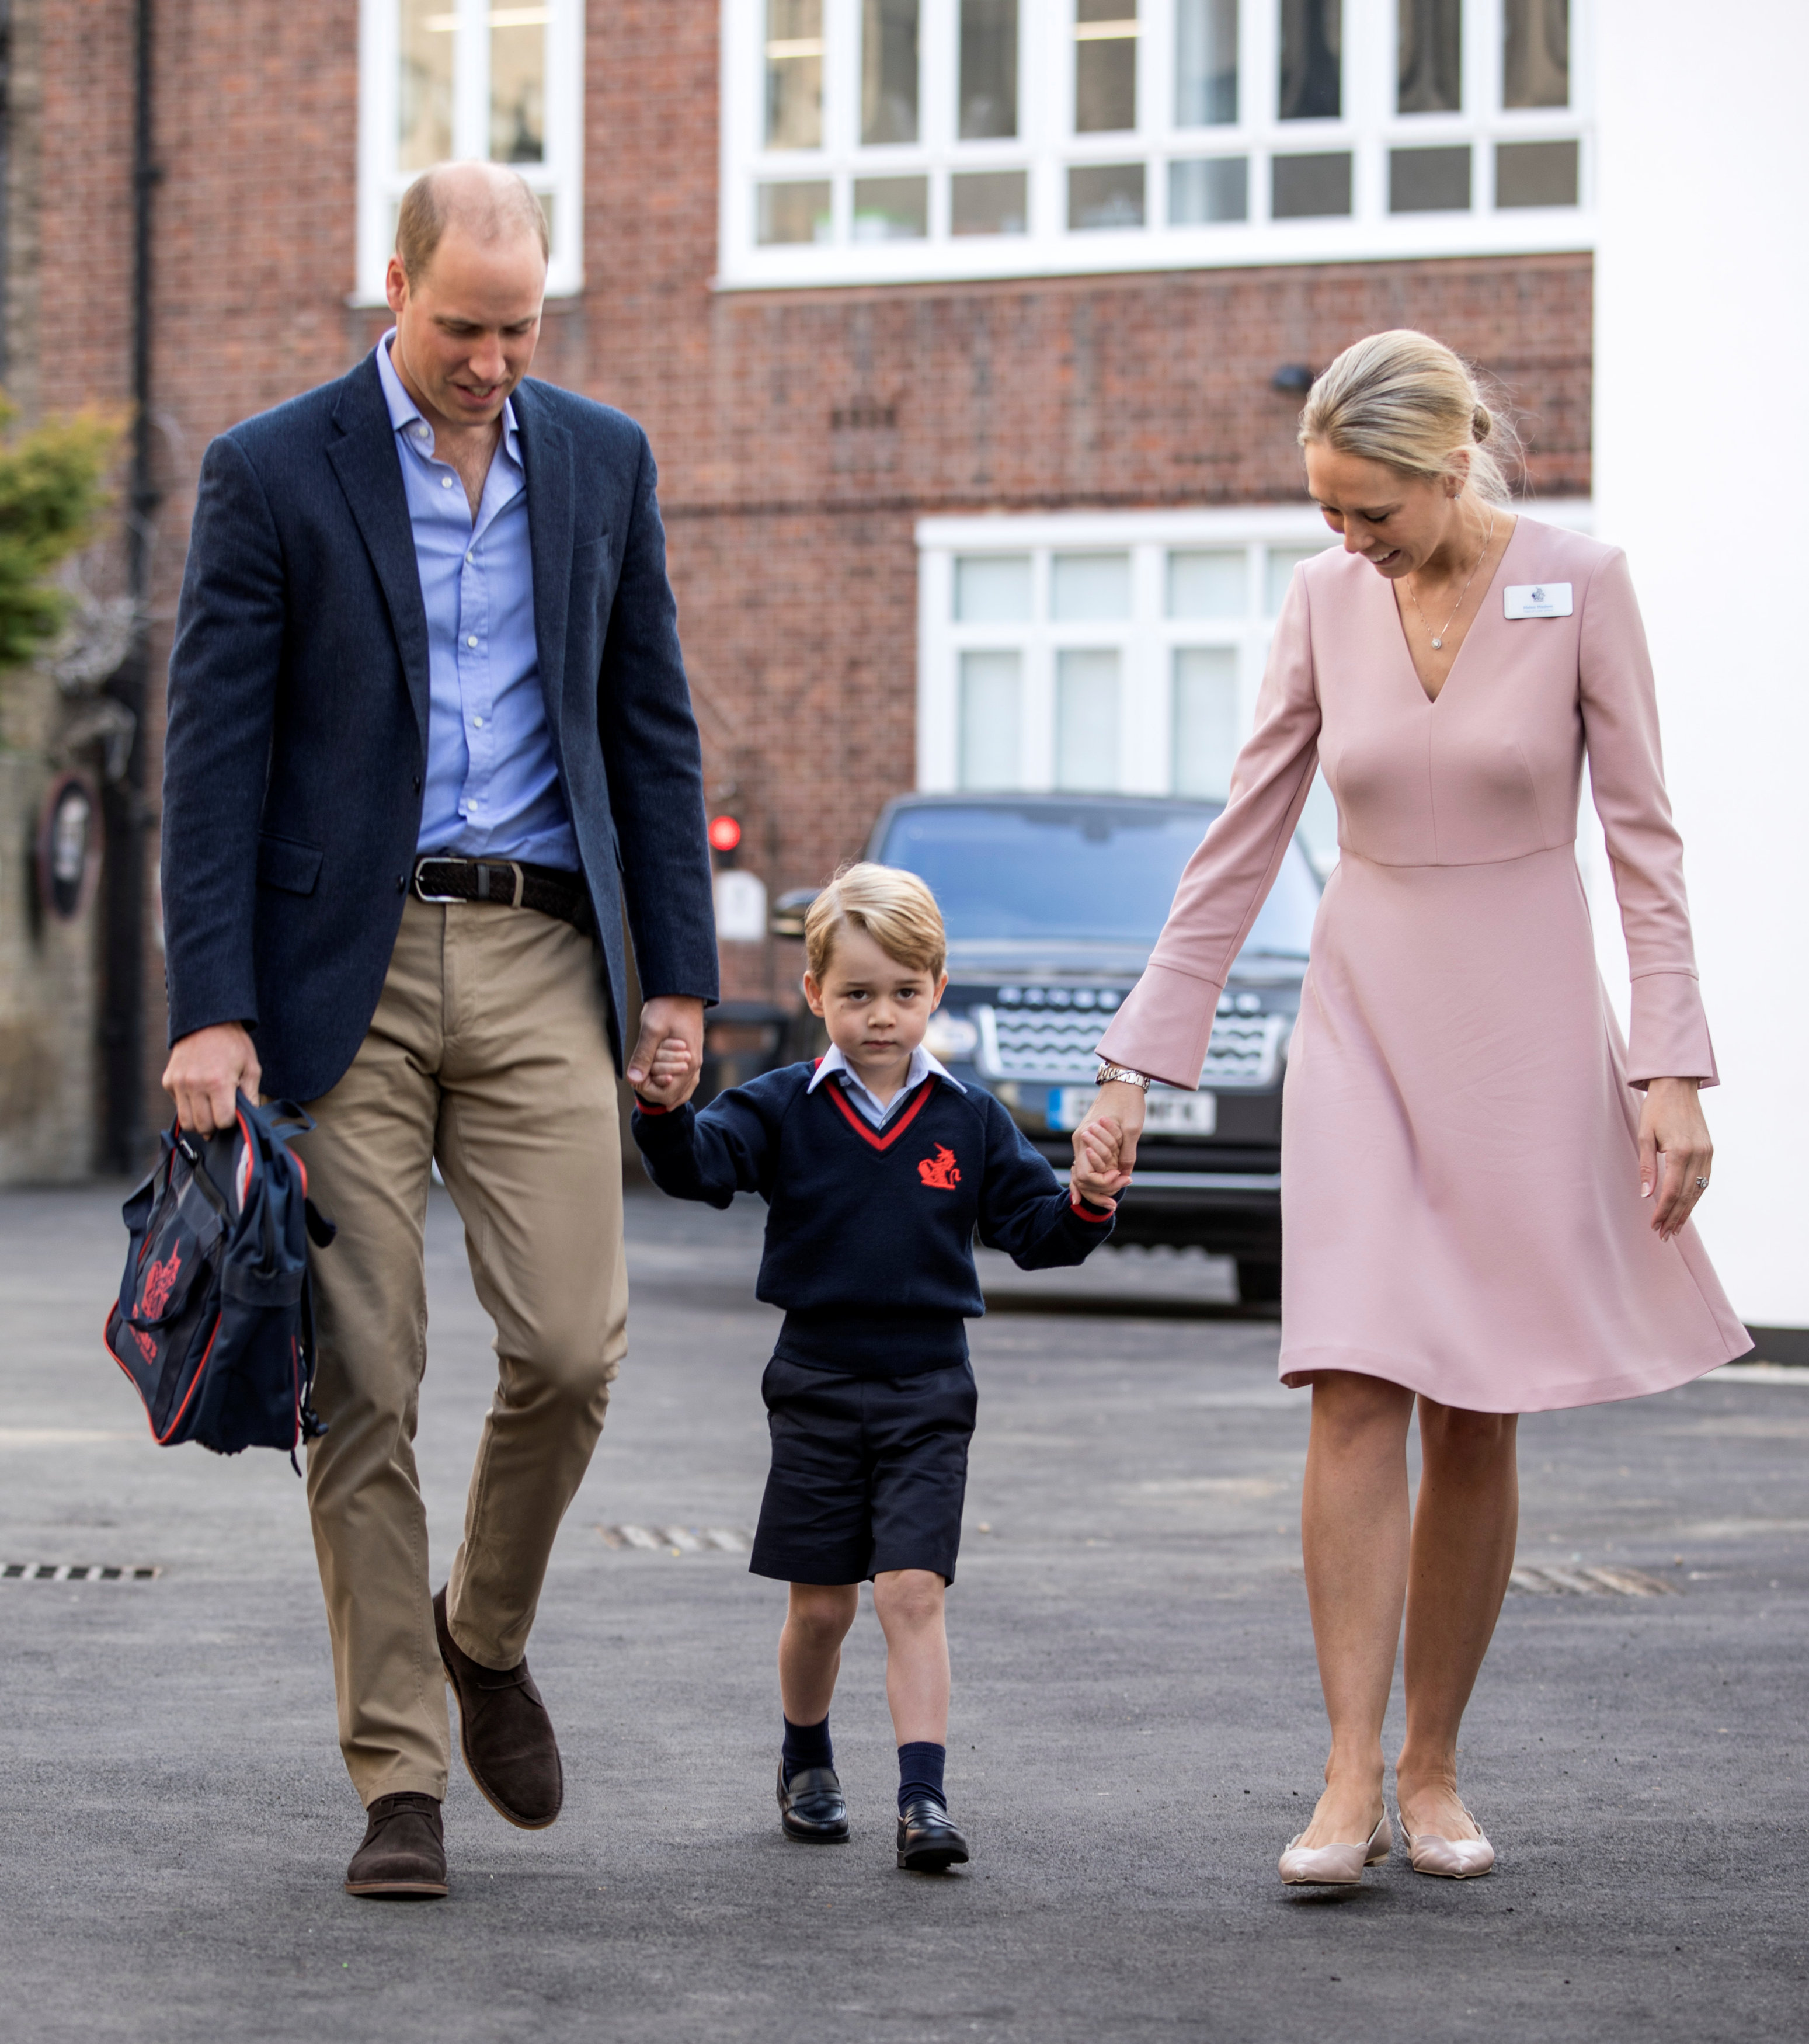 Helen Haslem, head of the lower school and Britain's Prince William hold Prince George's hands as he arrives for his first day of school at Thomas's school in Battersea, London, Sept. 7, 2017. (REUTERS/Richard Pohle/Pool)